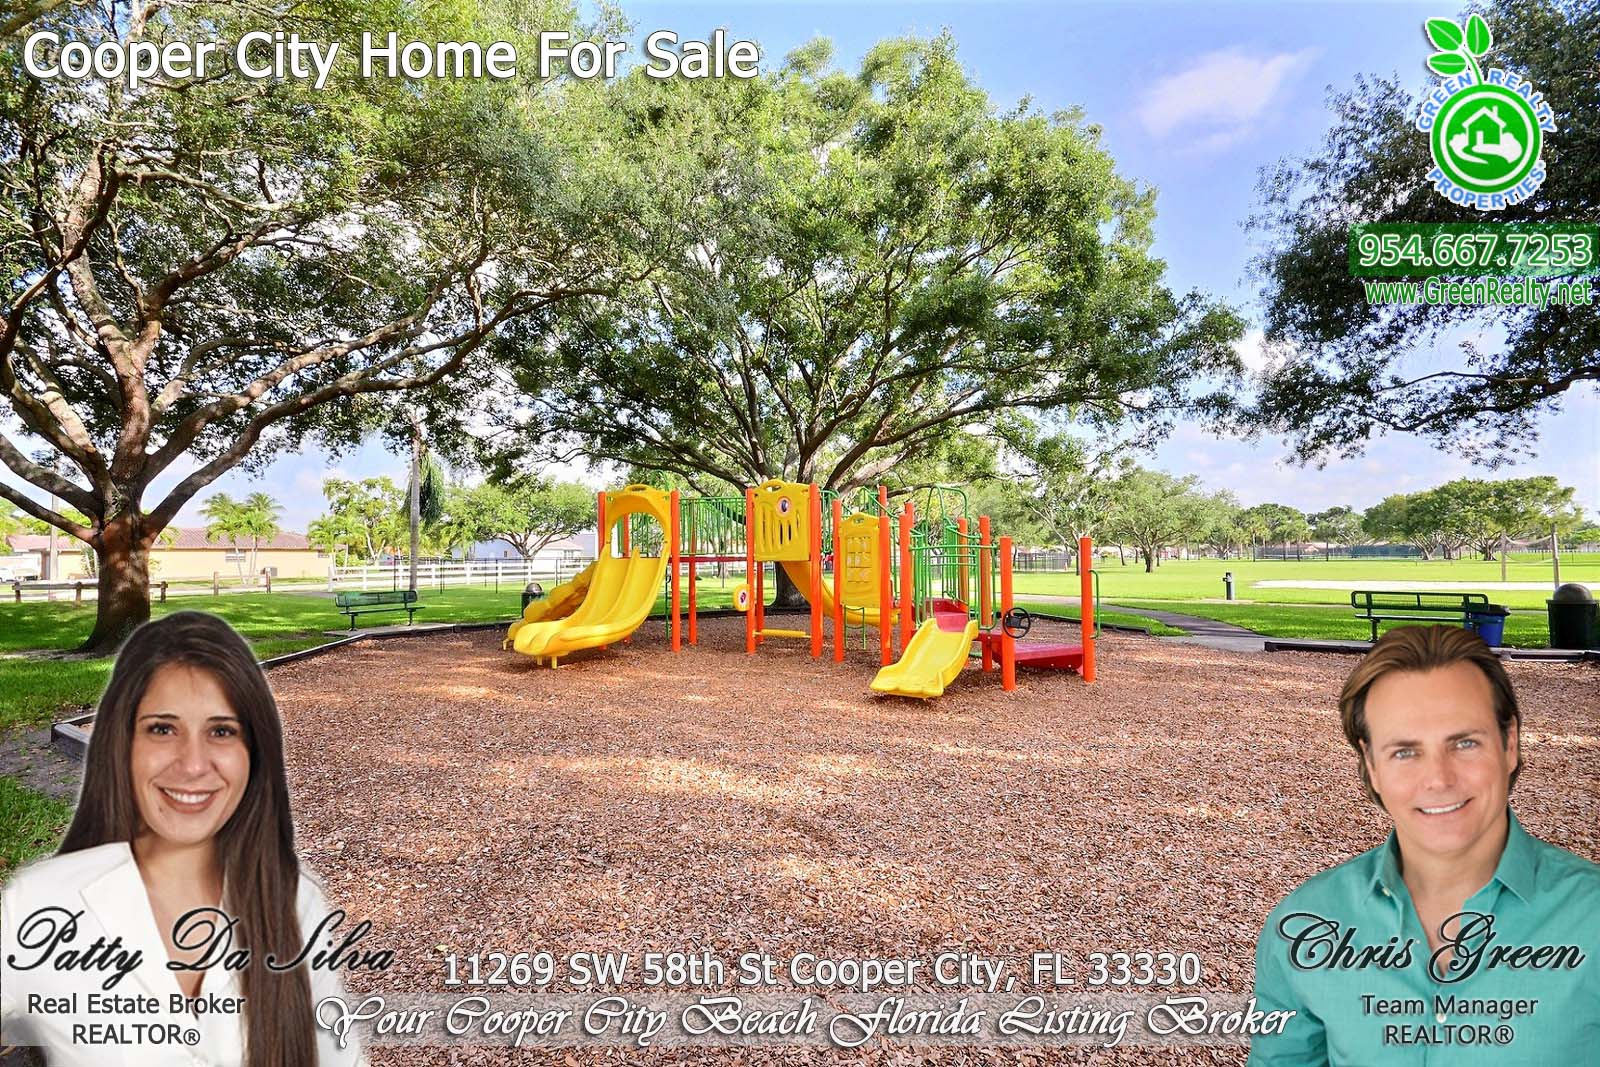 25 Cooper City Real Estate - Villas (6)